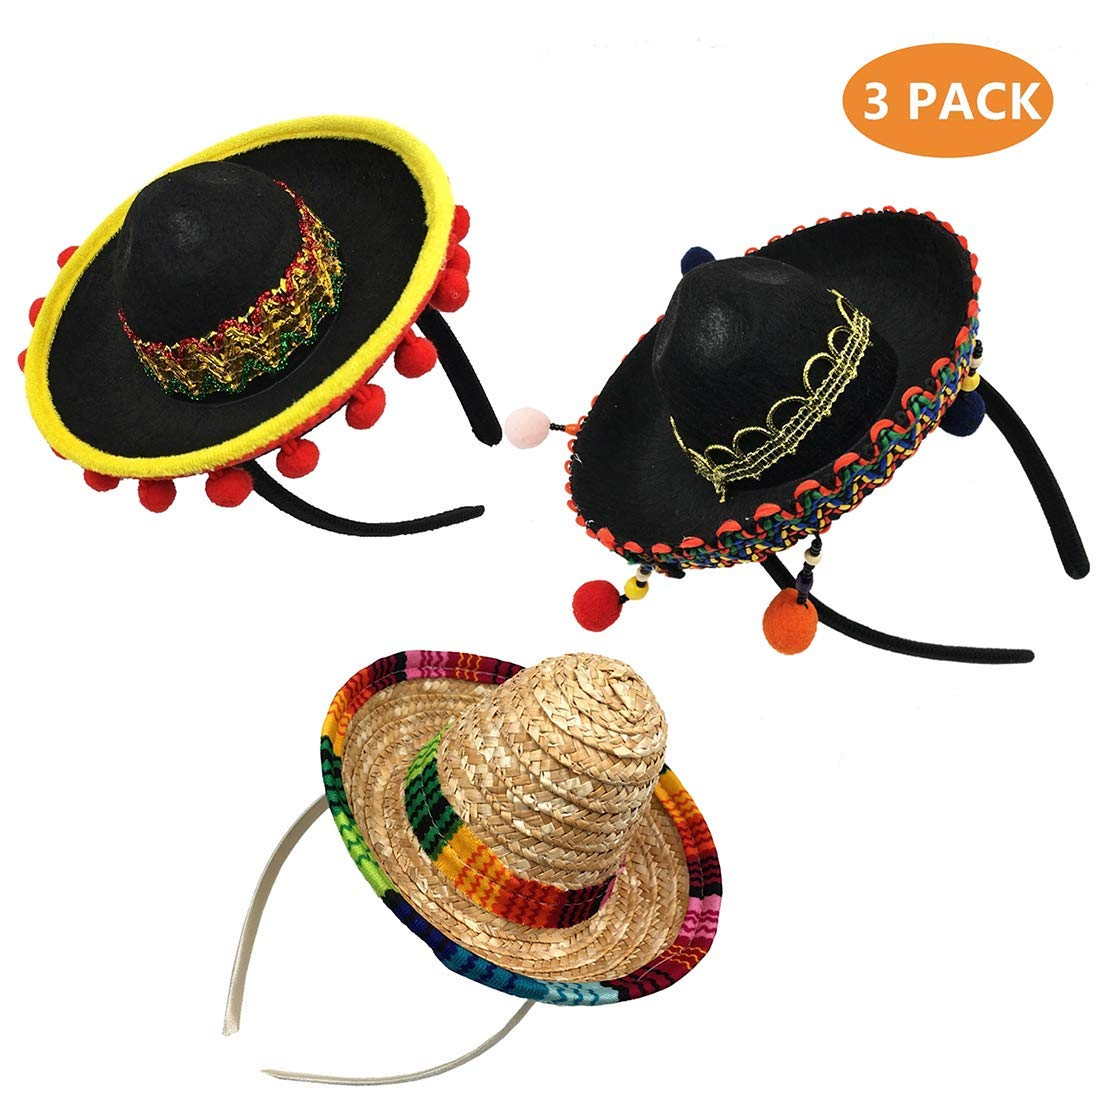 kockuu 3 Pack Cinco de Mayo Sombrero Headband Mini Mexican Party Hat for Fiesta/Carnival/Birthday/Summer Party Decorations Mexican Party Favors by kockuu